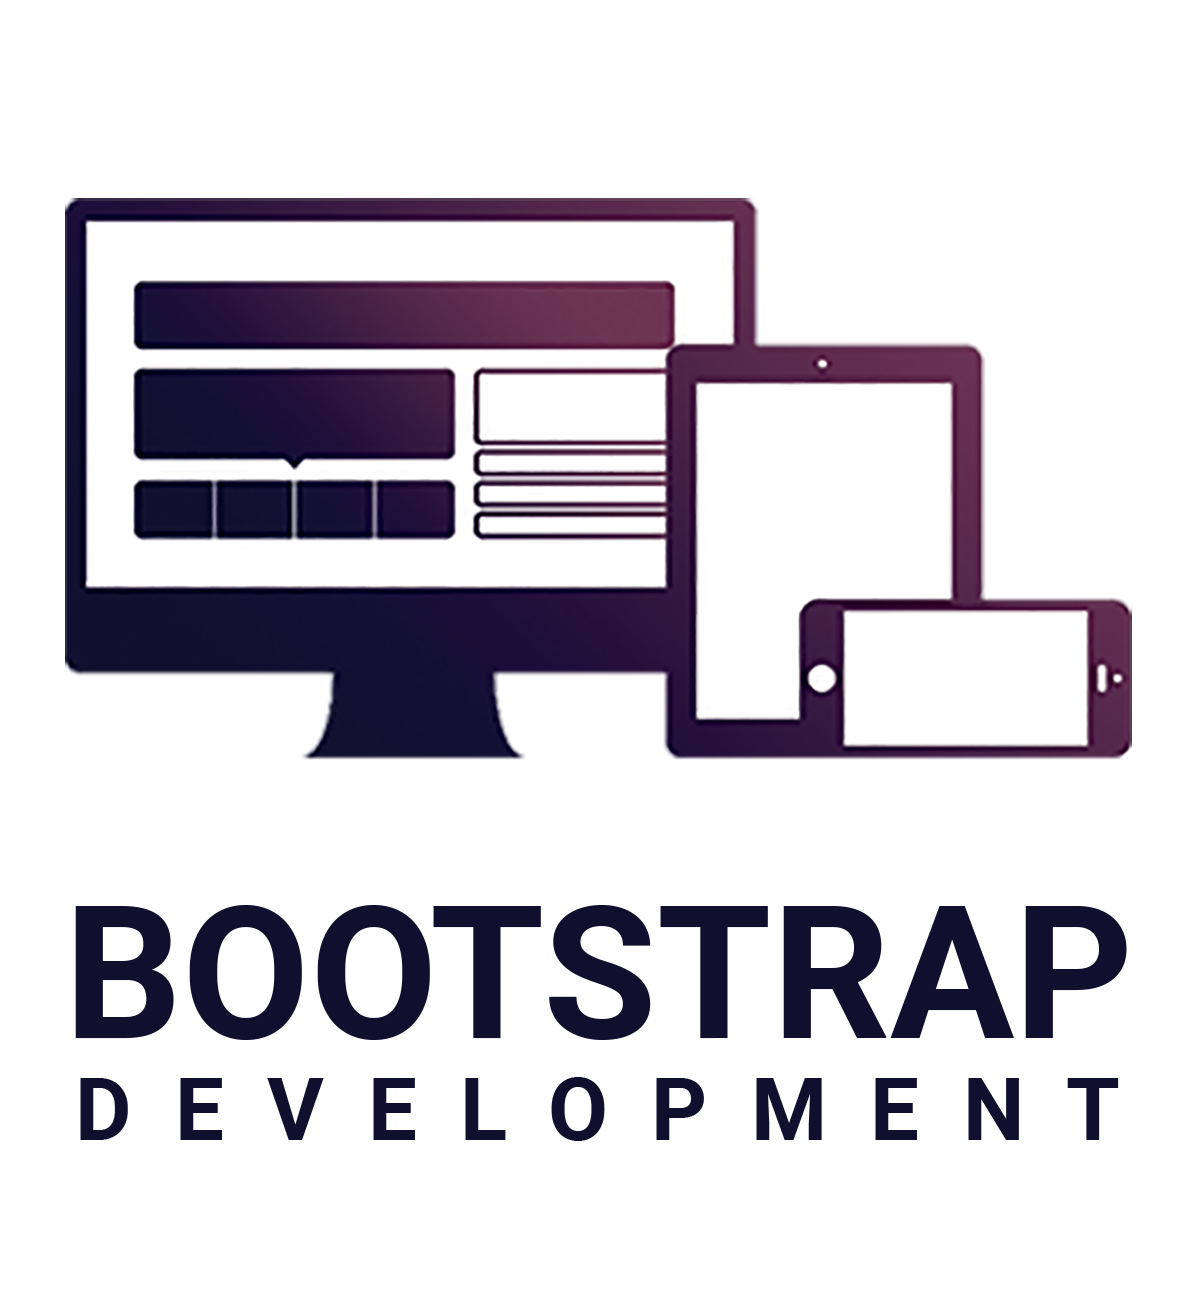 https://arksstech.com/wp-content/upload/2018/06/Bootstrap.png